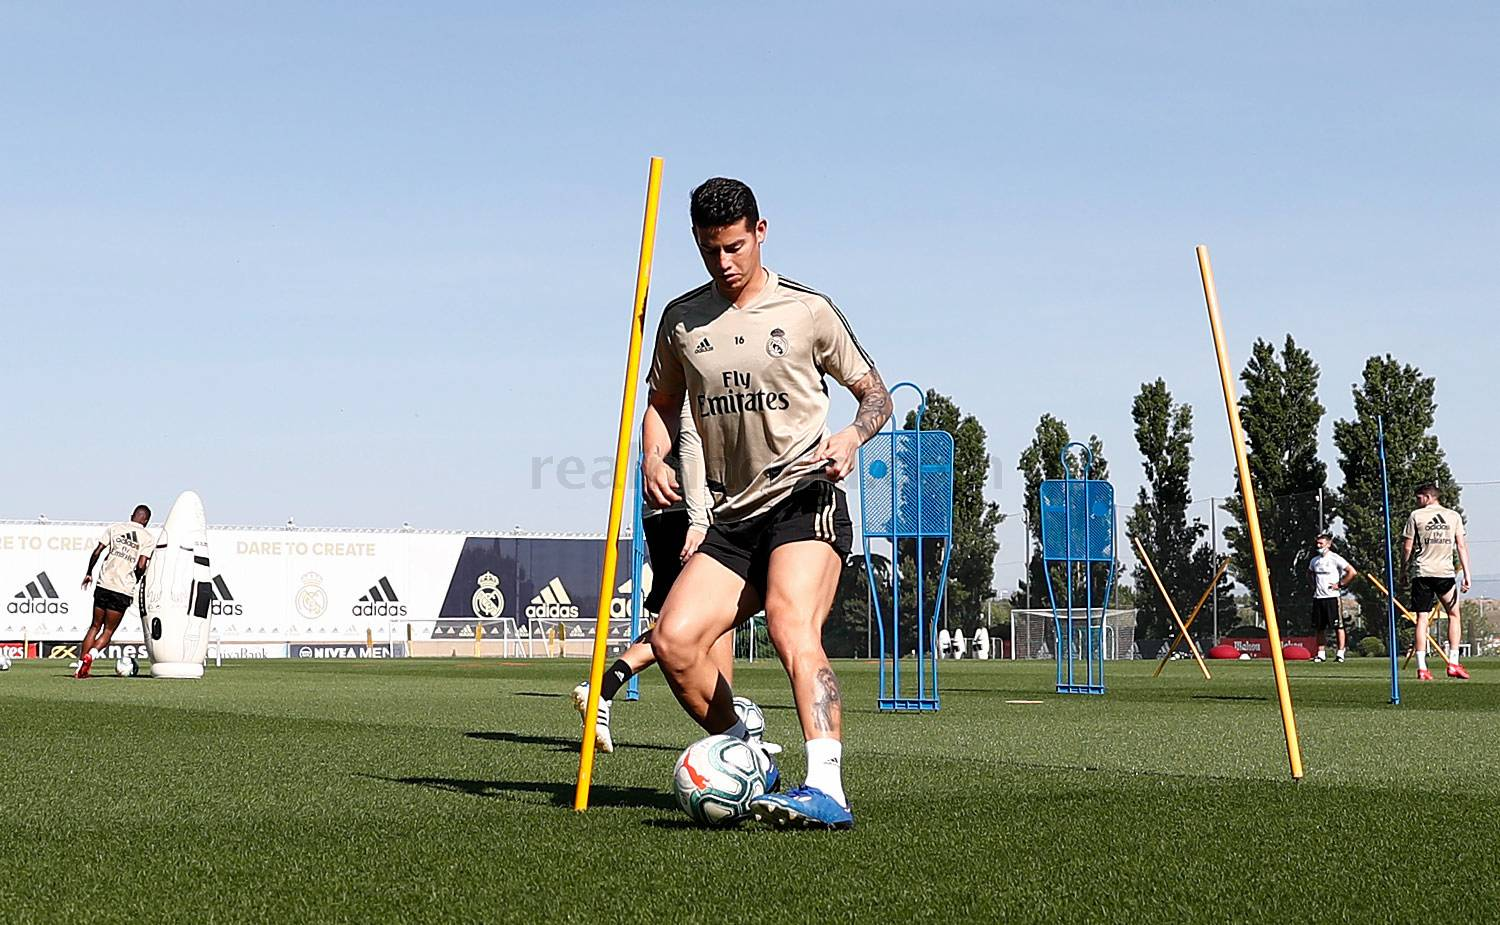 Real Madrid - Entrenamiento del Real Madrid  - 22-05-2020